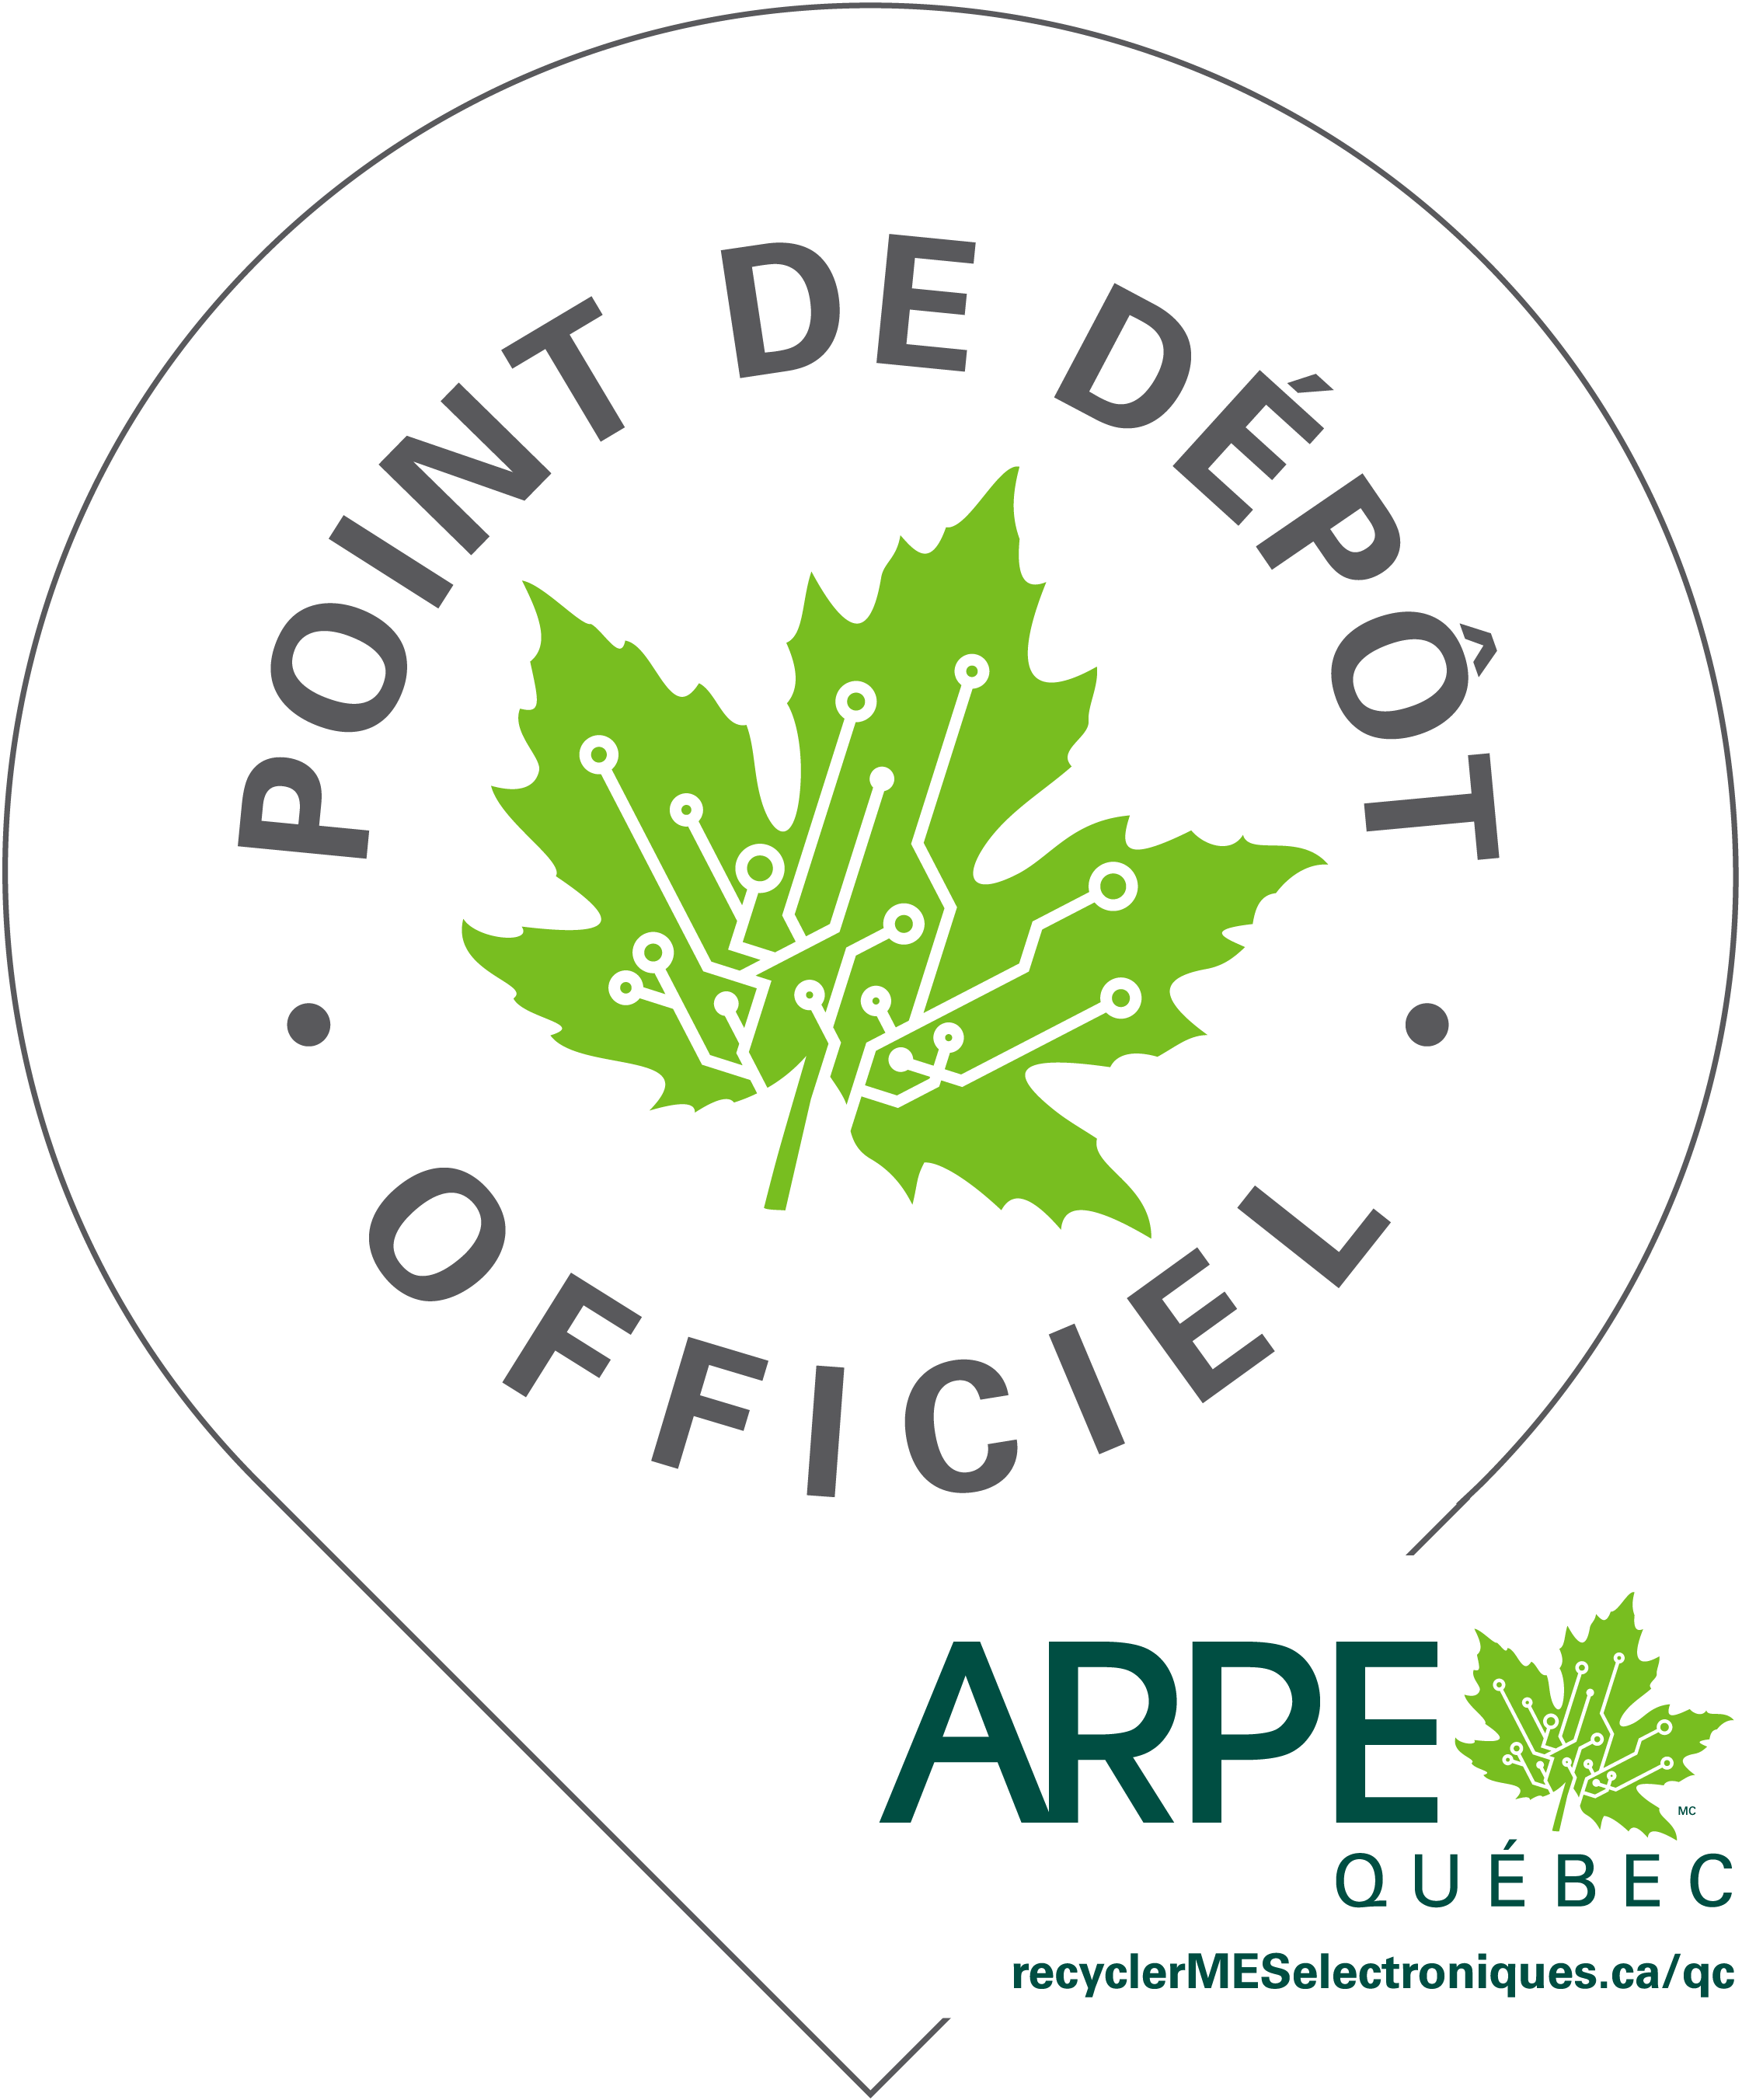 EPRA19-_Authorized_Drop_Off_PQ_URL_FR.png (259 KB)